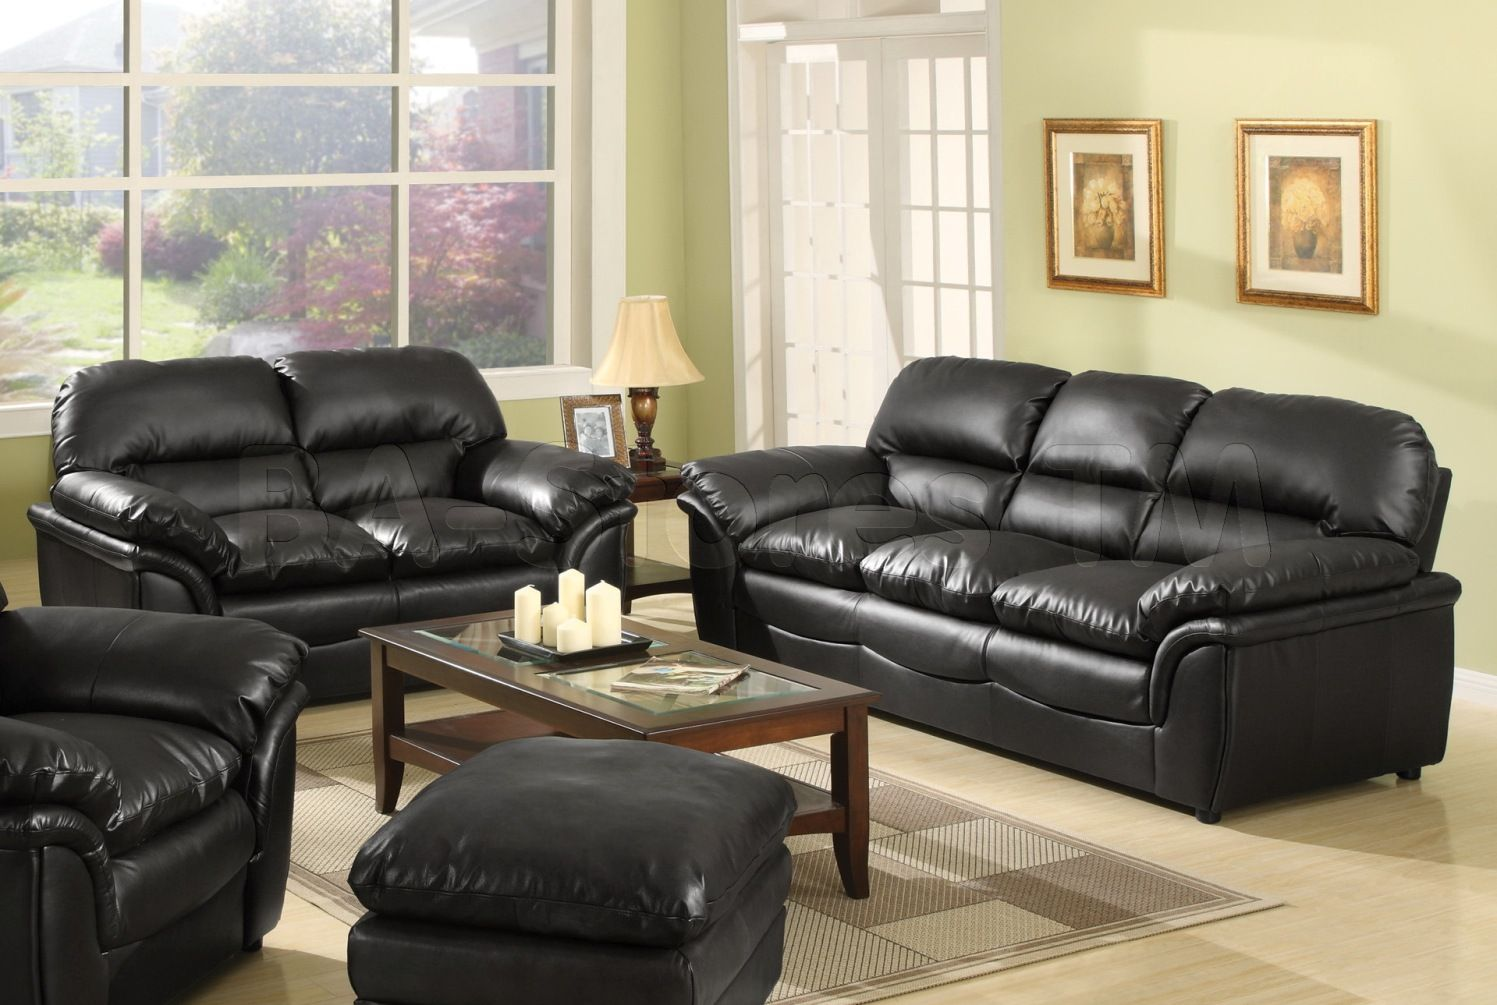 Black Leather Sofa The Best Choice For Charming Living Area Fascinating Black Leather Living Room Furniture Inspiration